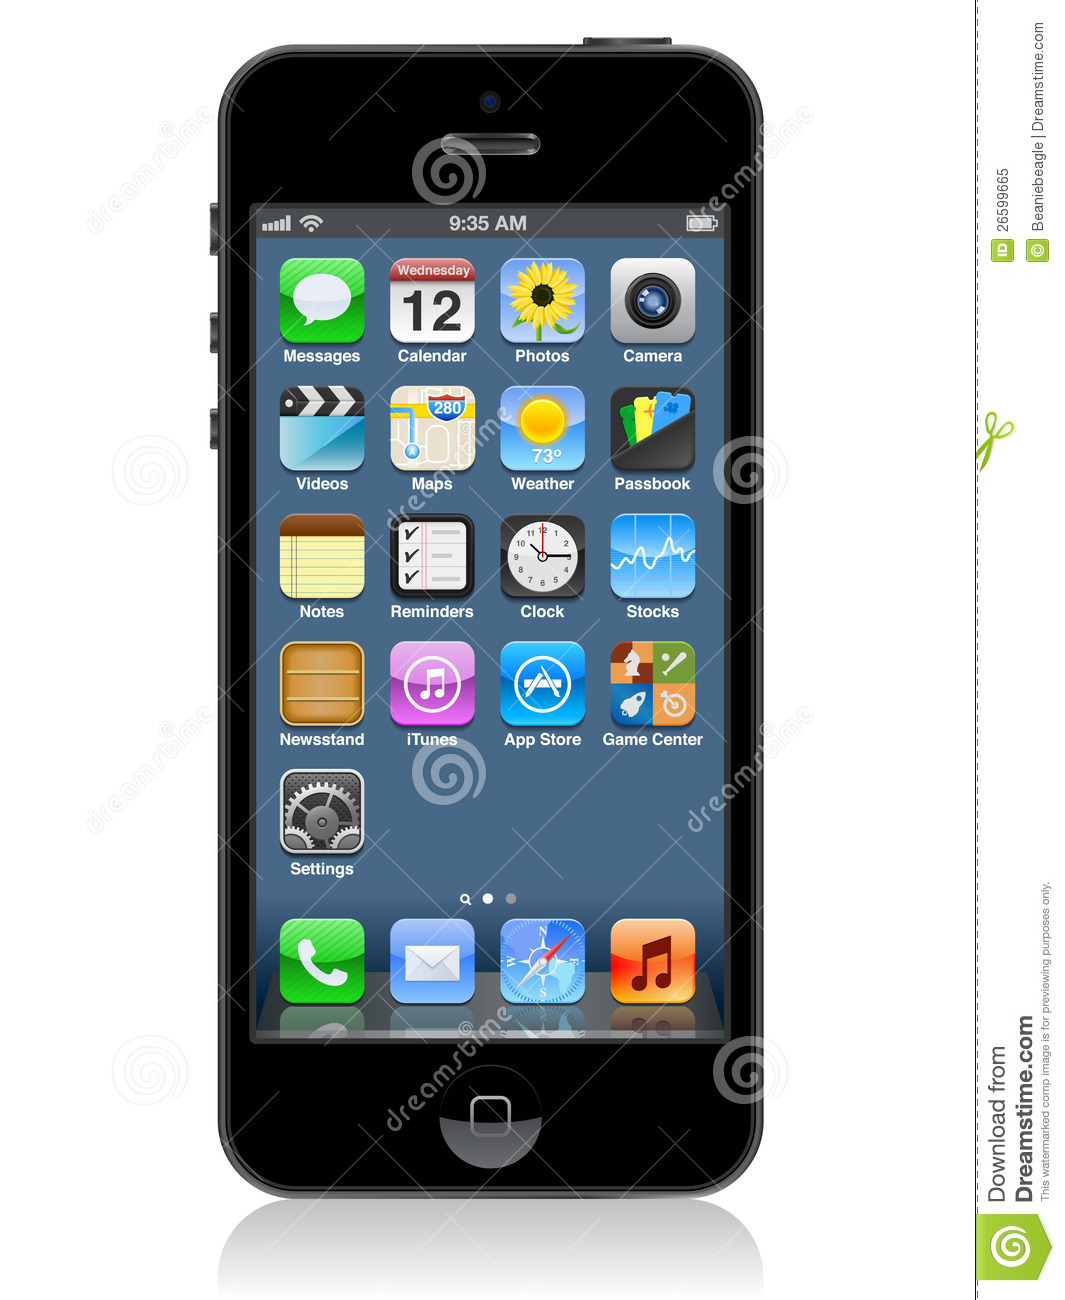 business abstract apple iphone 5 The apple iphone 5 features a 4-inch retina display, ultrafast wireless, the powerful a6 chip, an 8-megapixel isight camera and icloud this certified pre-owned iphone 5 is a quality-tested used phone with a 30-day return period.